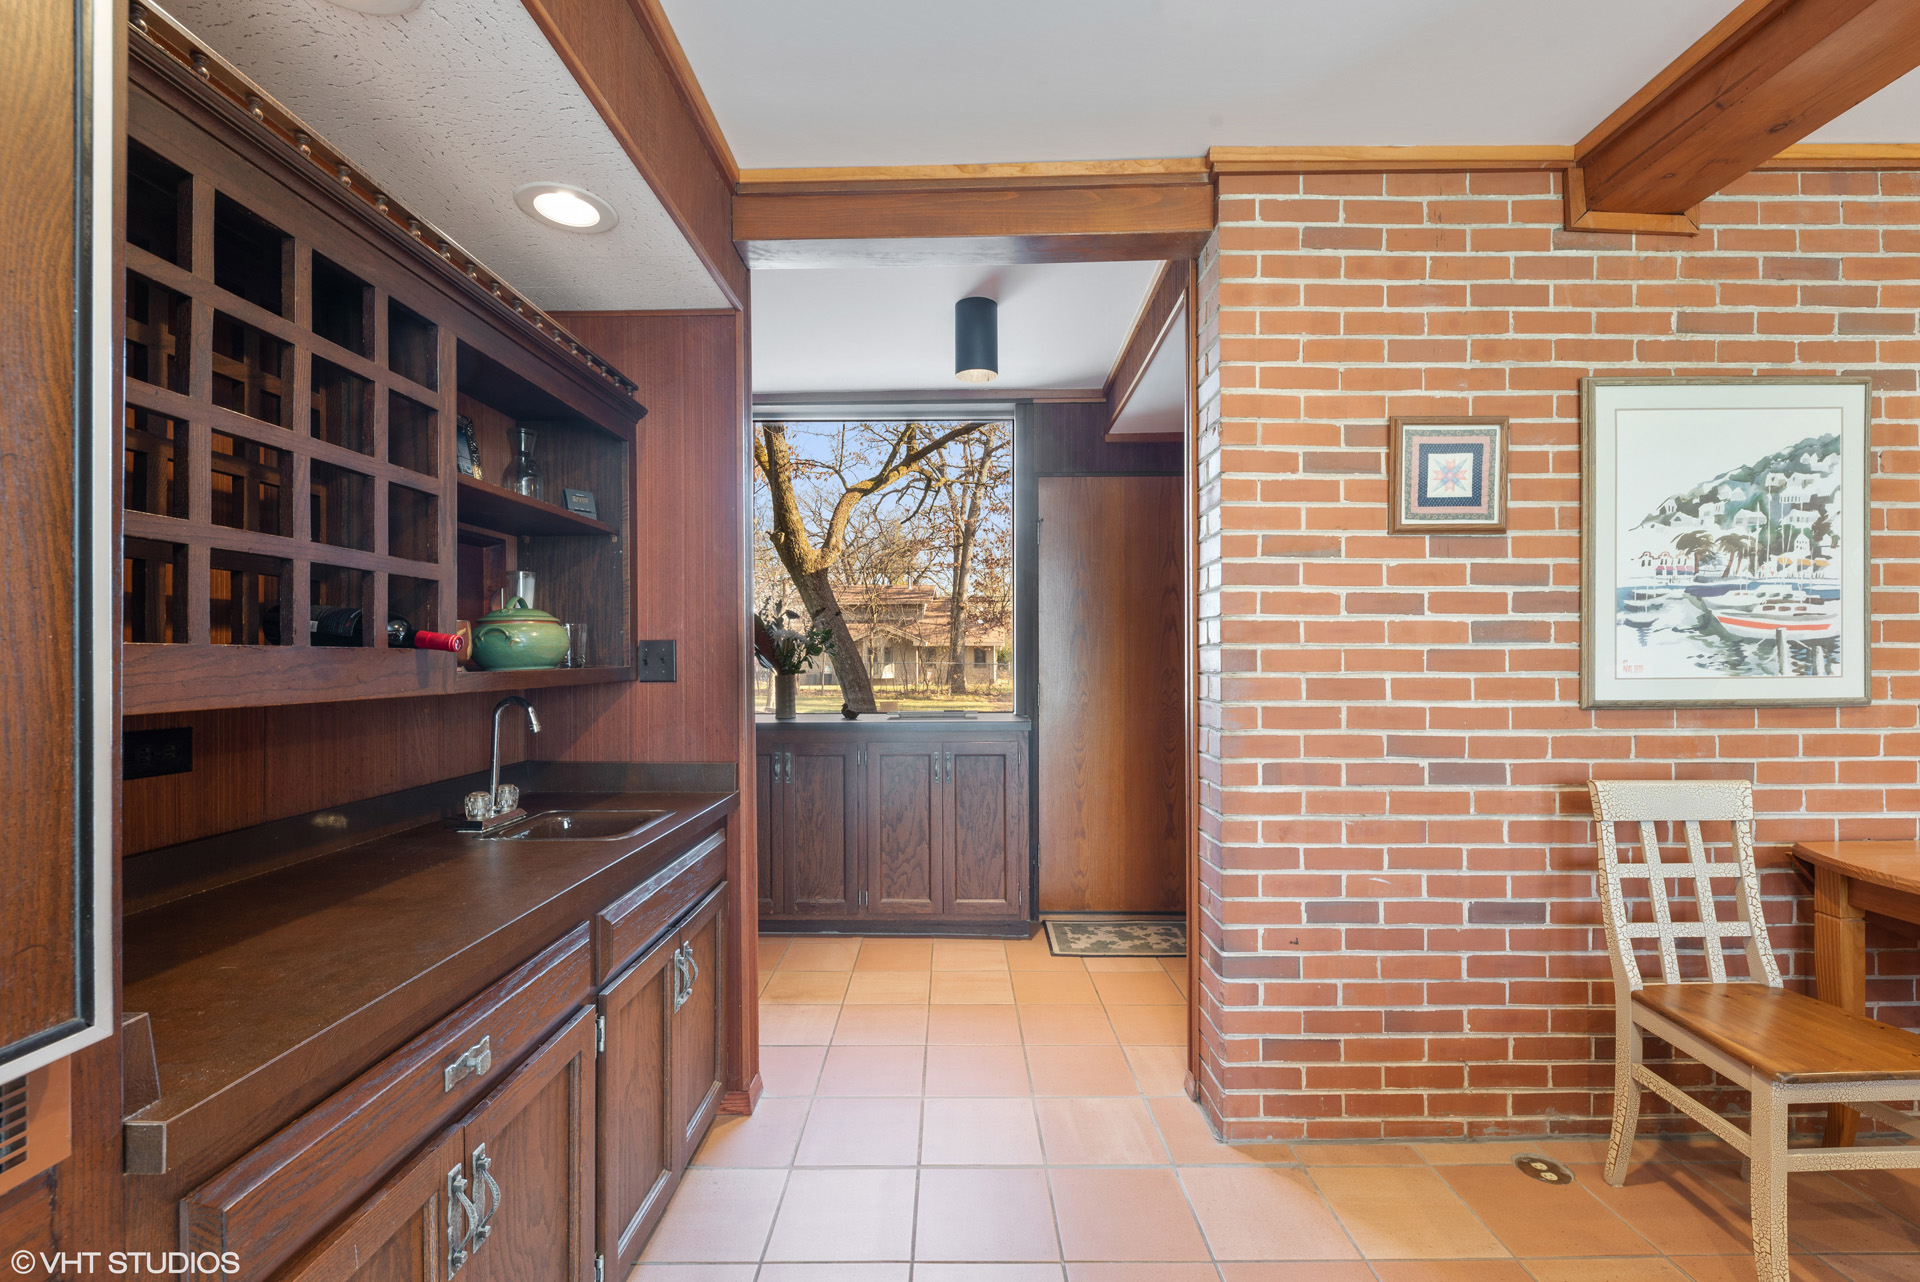 Closed at $450,000 on January 20, 2021